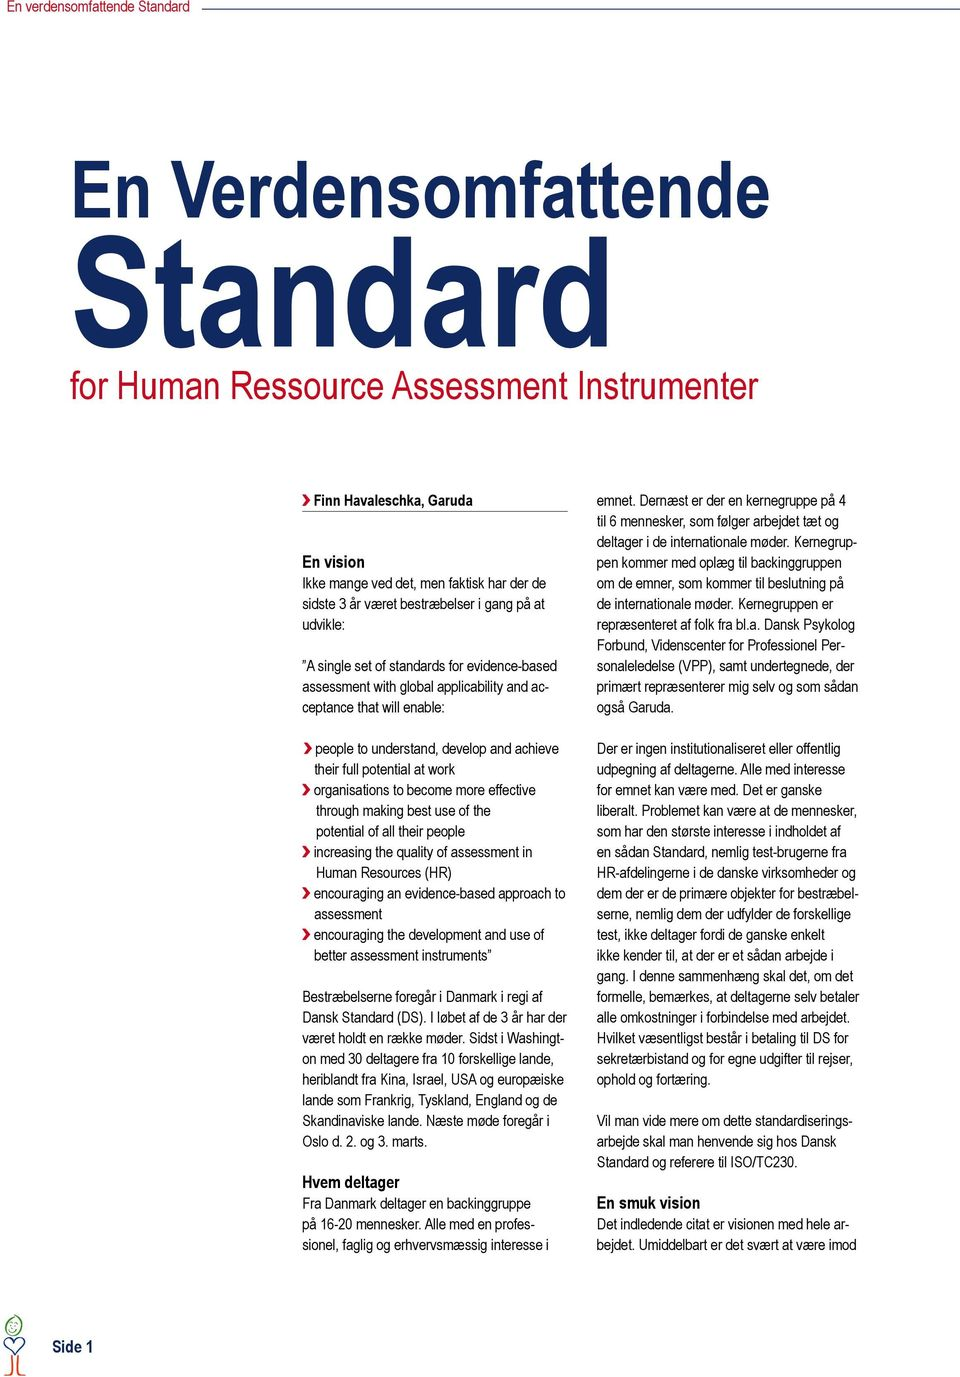 full potential at work organisations to become more effective through making best use of the potential of all their people increasing the quality of assessment in Human Resources (HR) encouraging an